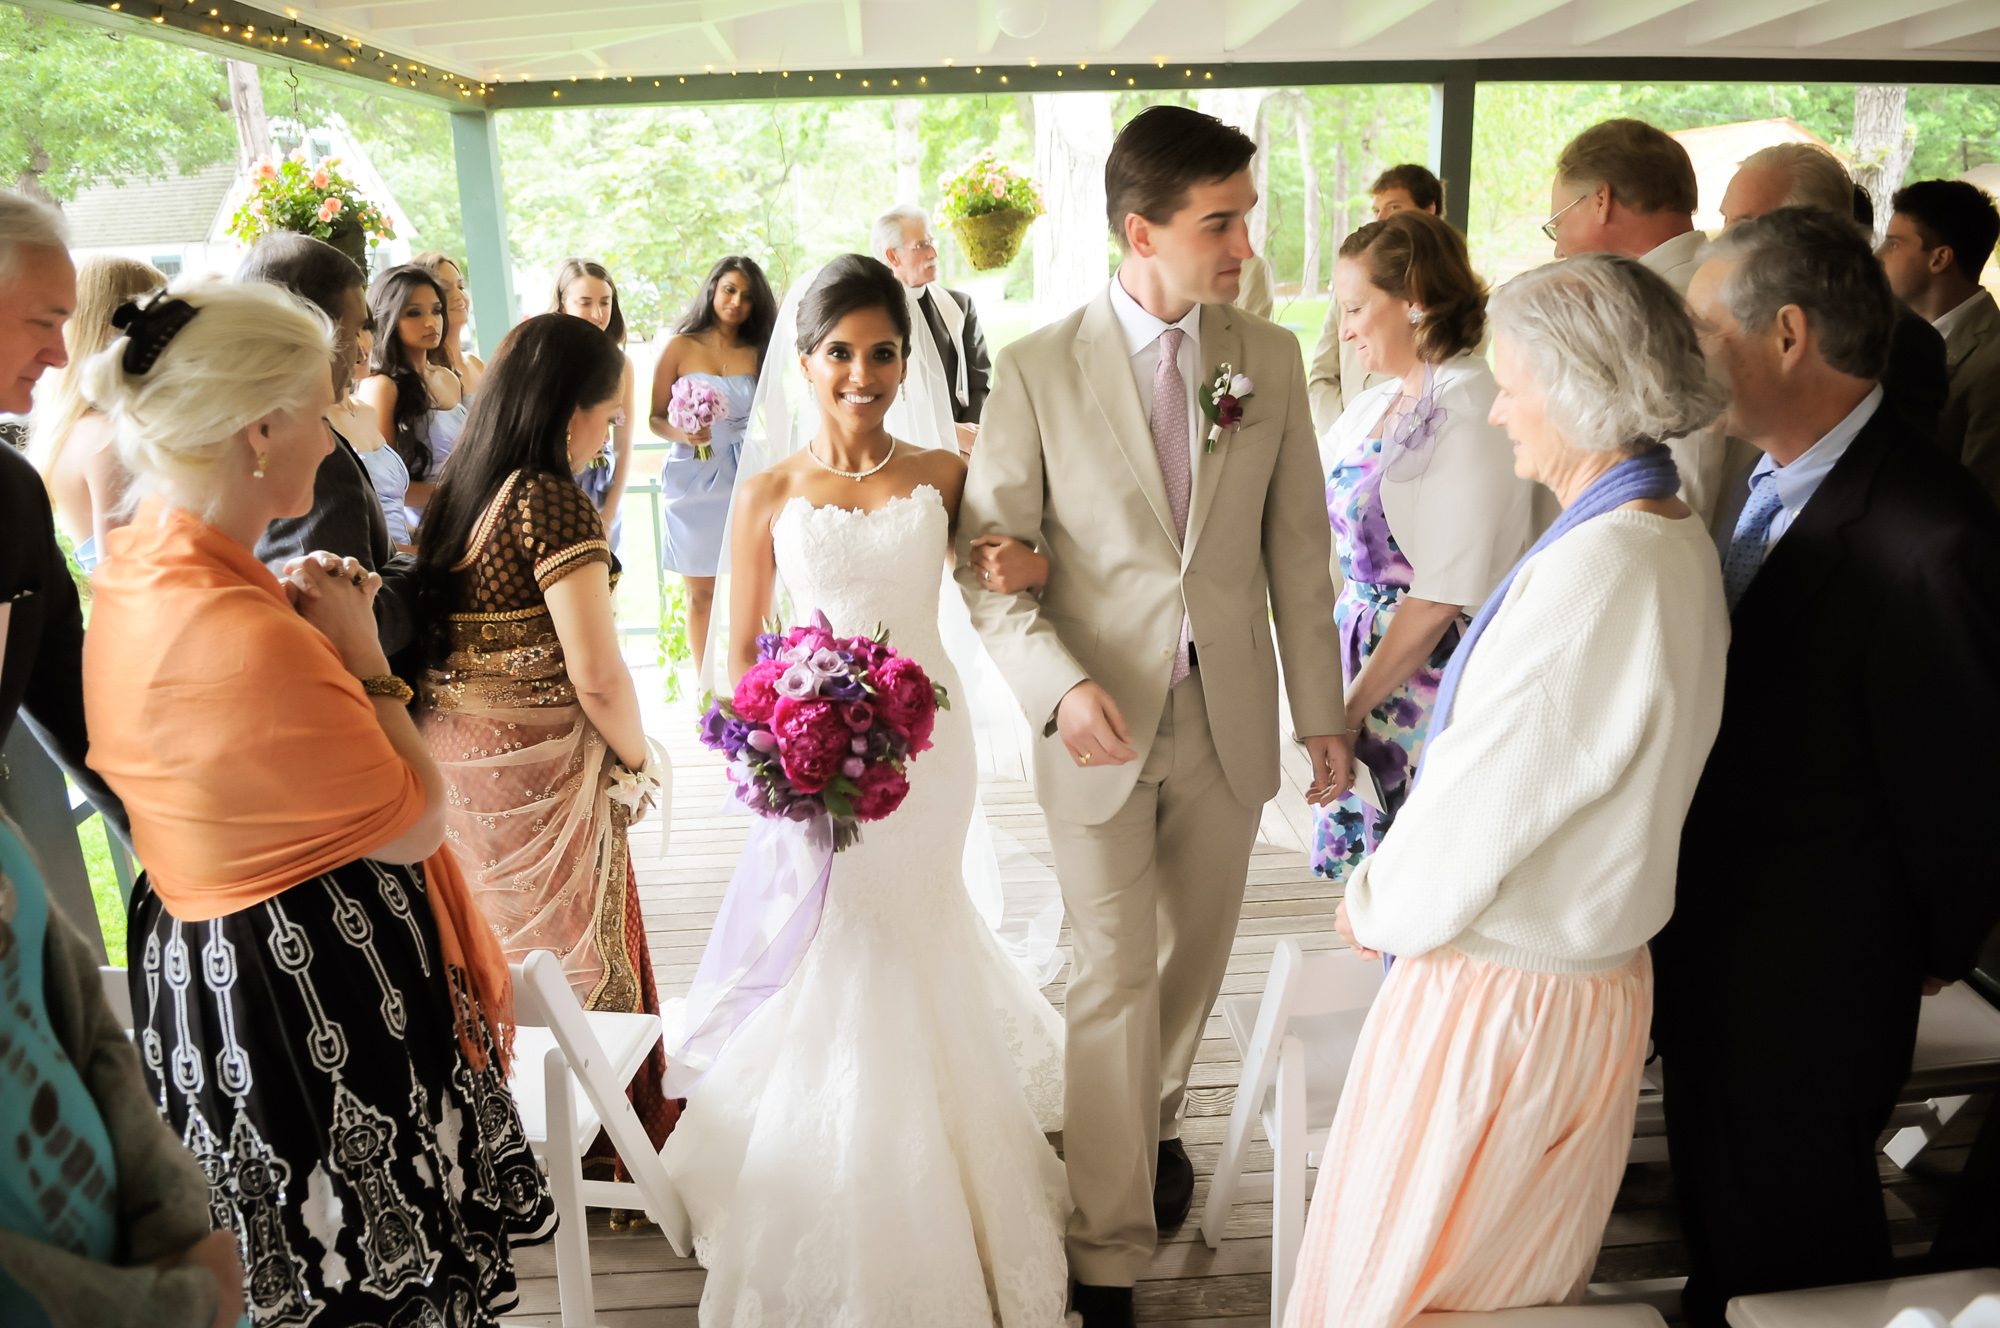 A bride and groom at a martha's vineyard wedding venues West Chop Club photo by David Welch Photography